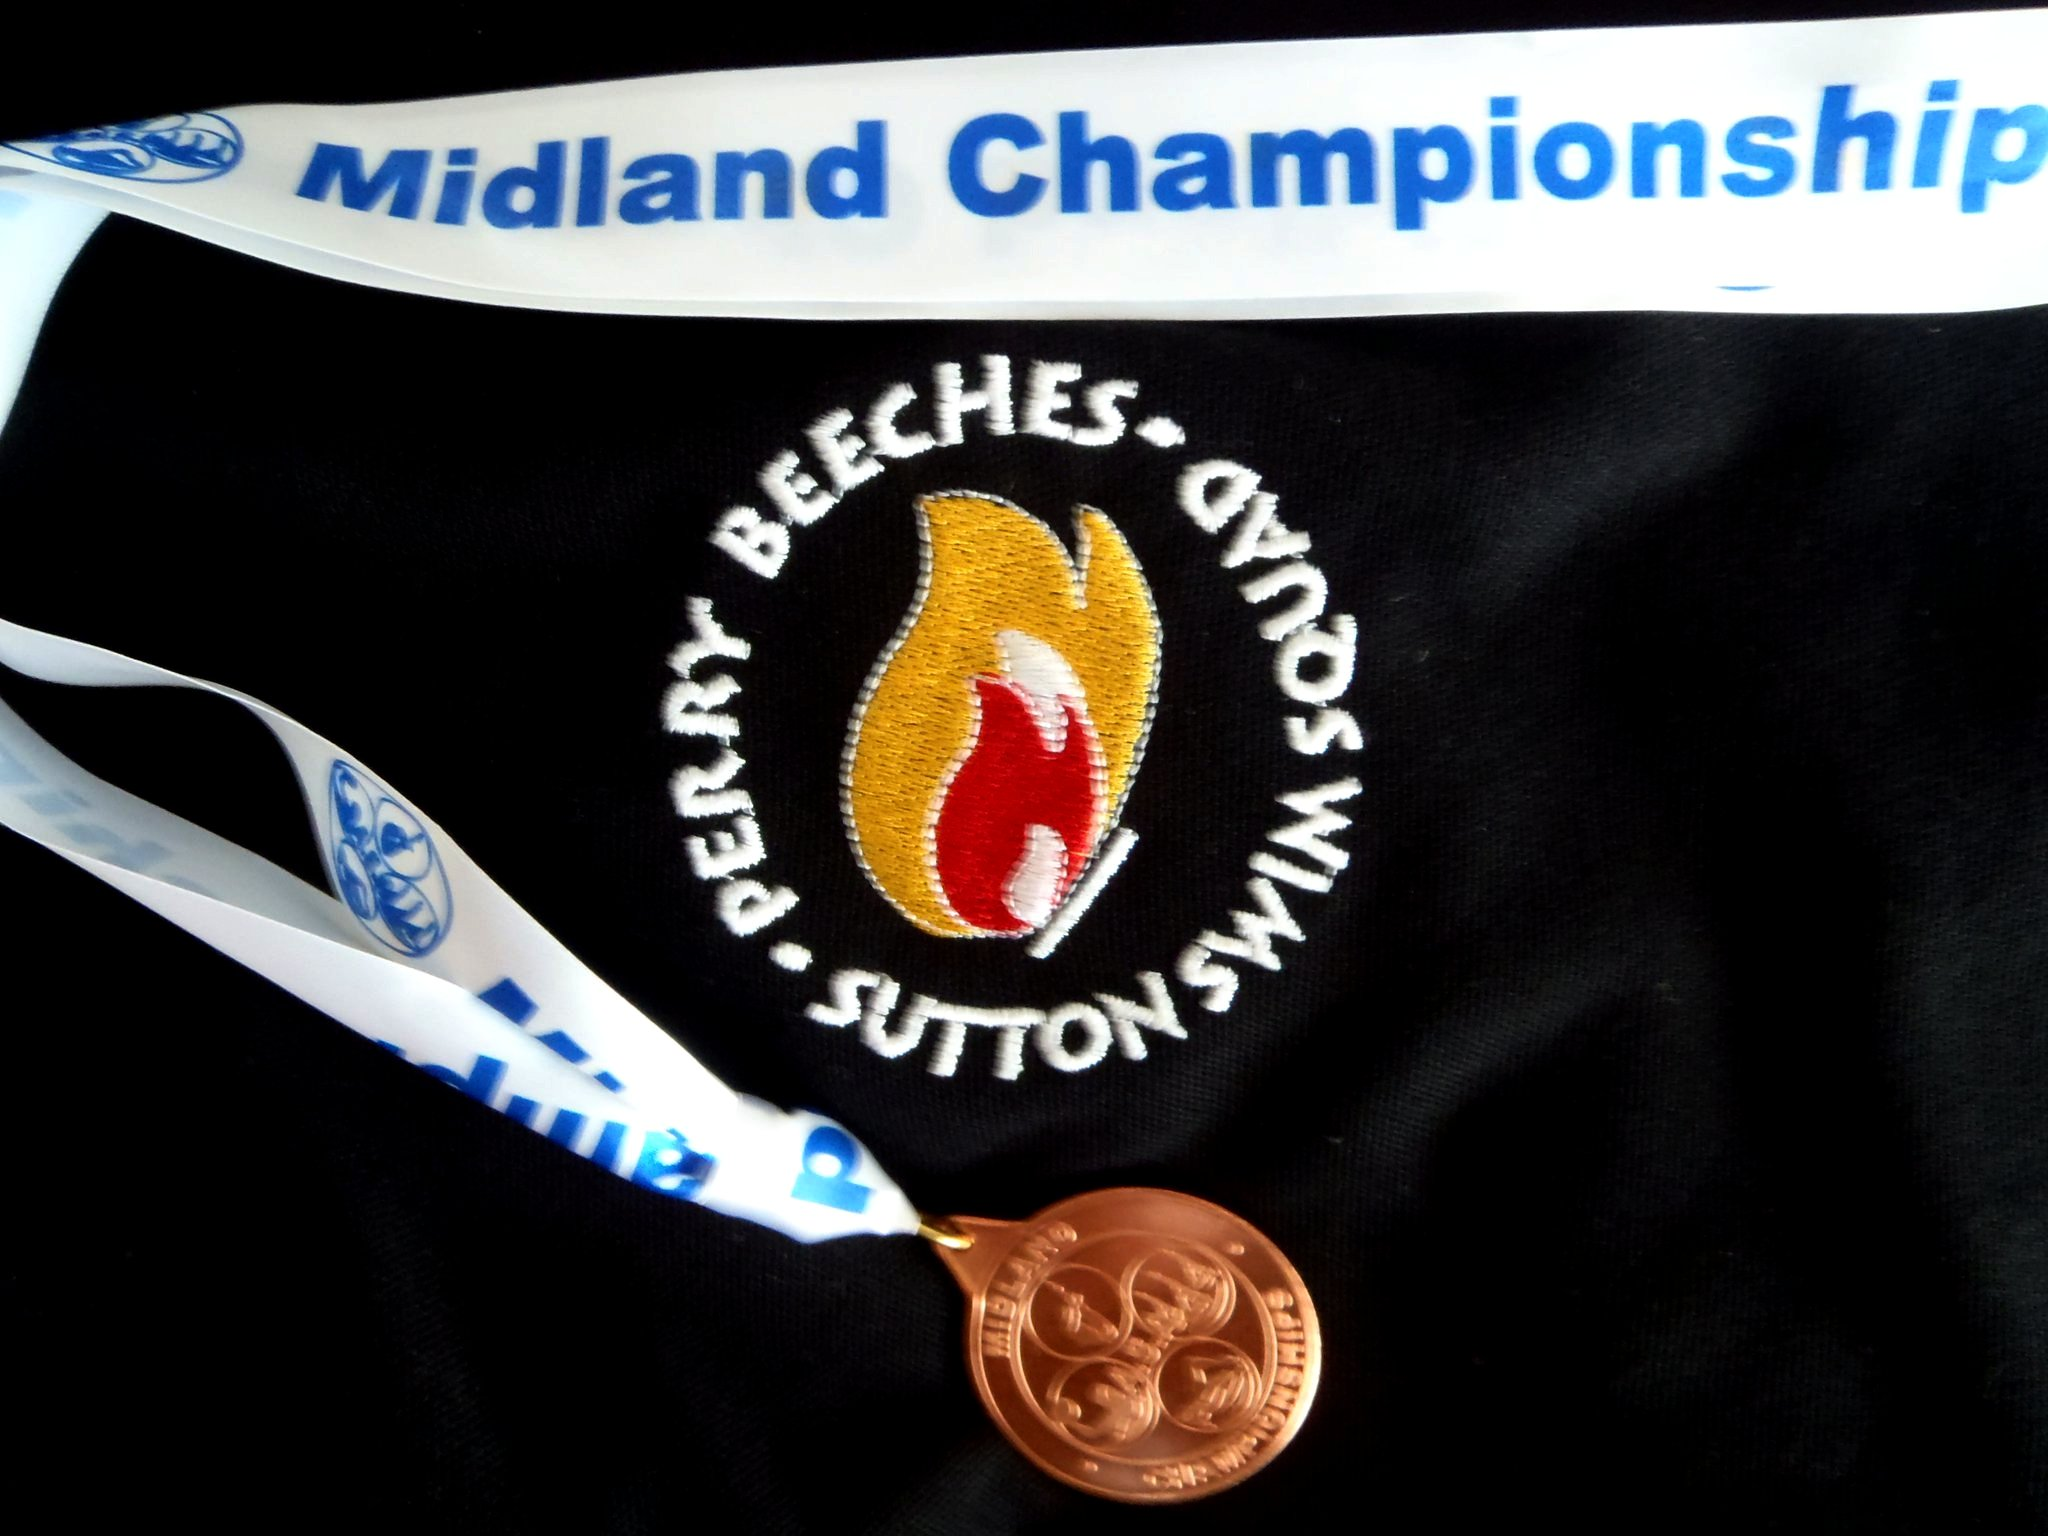 Beeches at the midland open water swimming champs beeches the club for life for Beeches swimming pool opening times